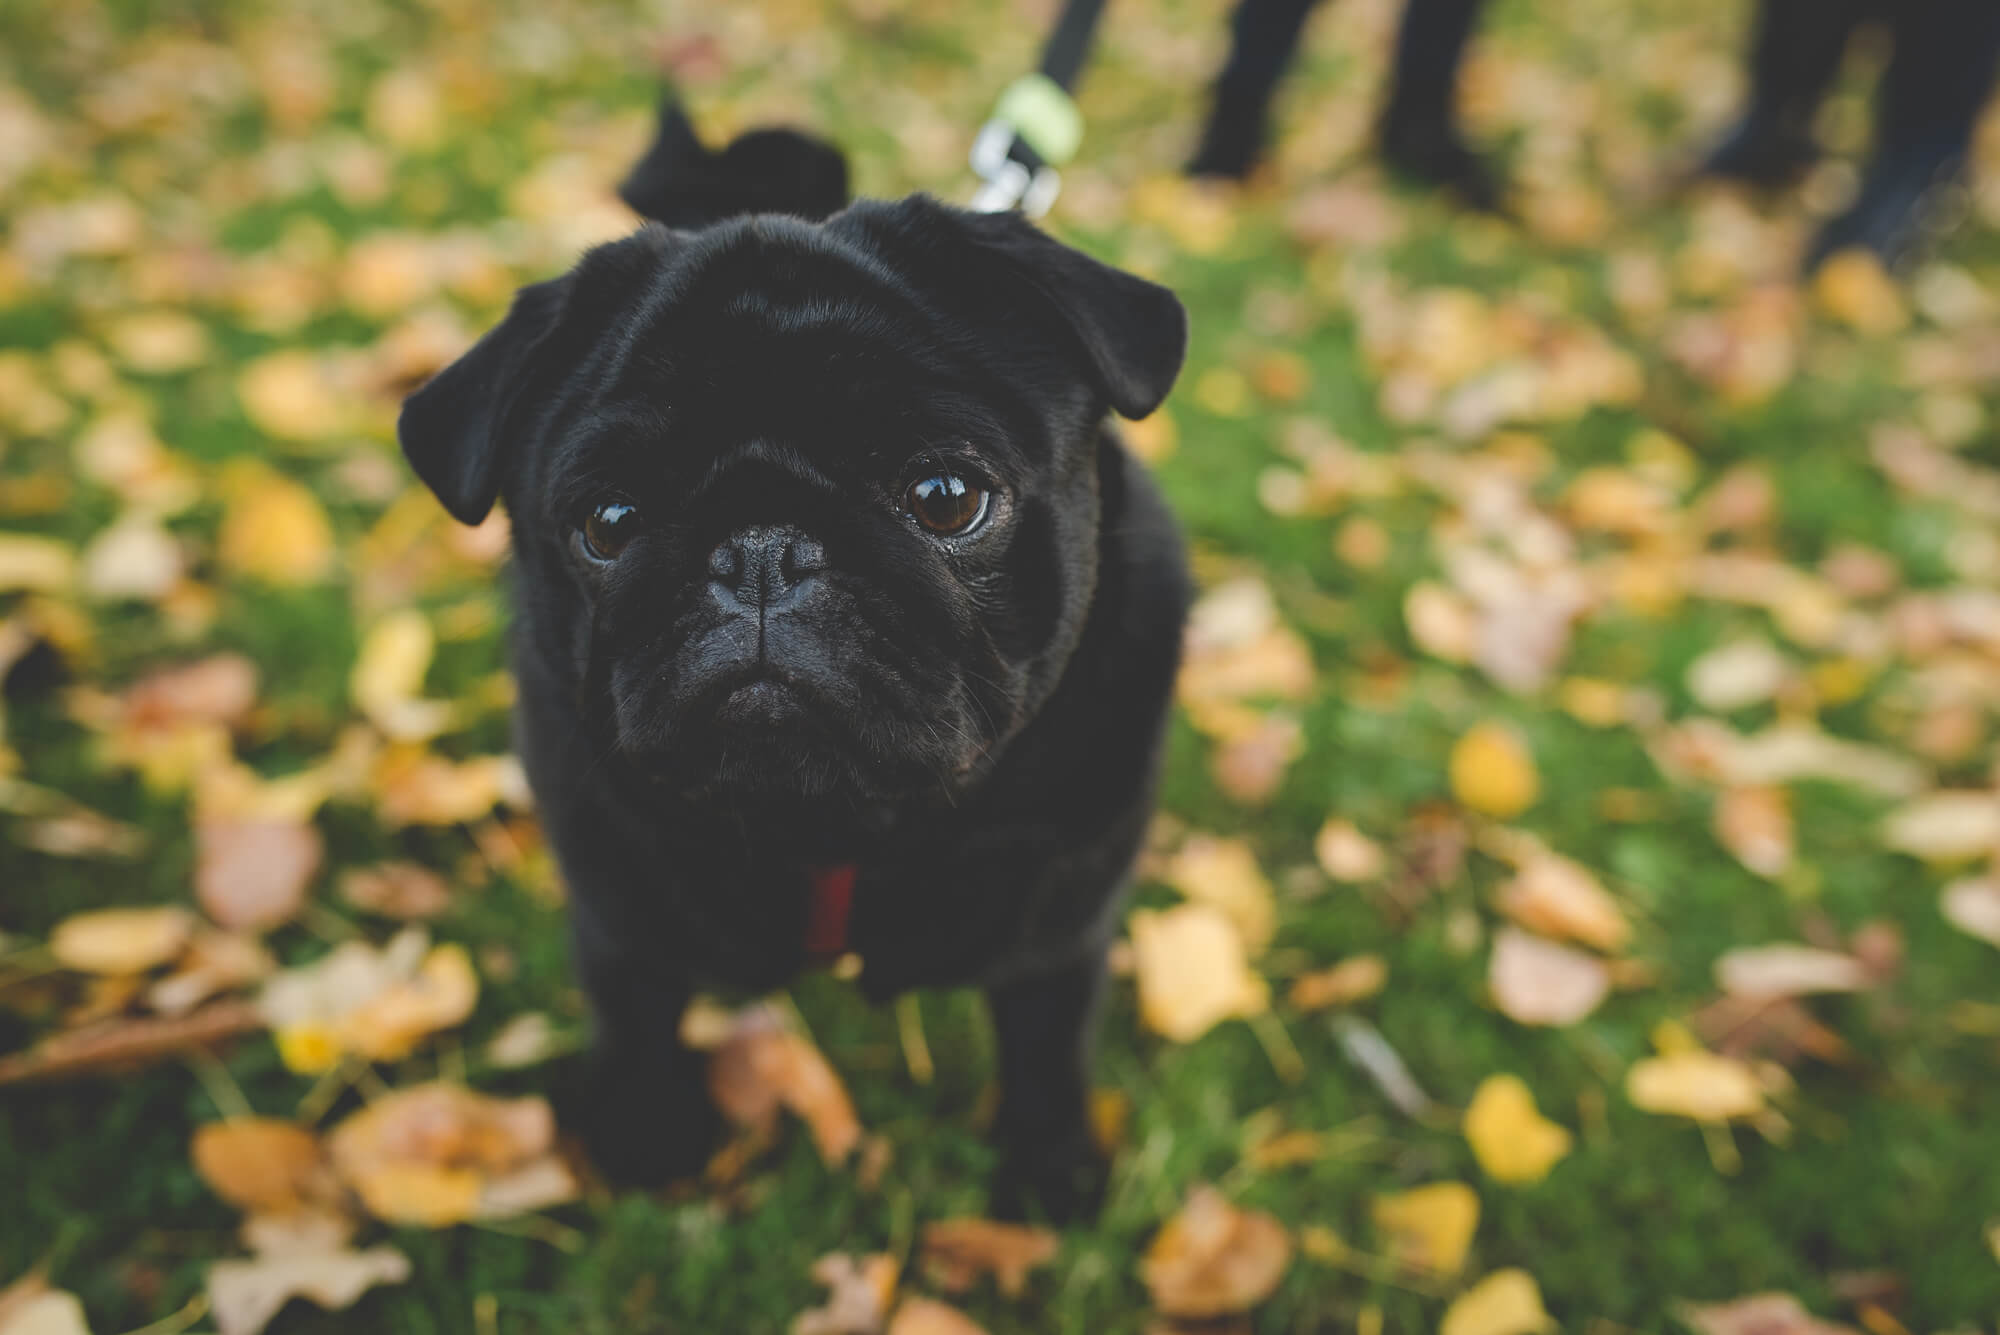 cute black pug puppy in fall leaves | QE Park autumn engagement | Vancouver lesbian wedding photographer